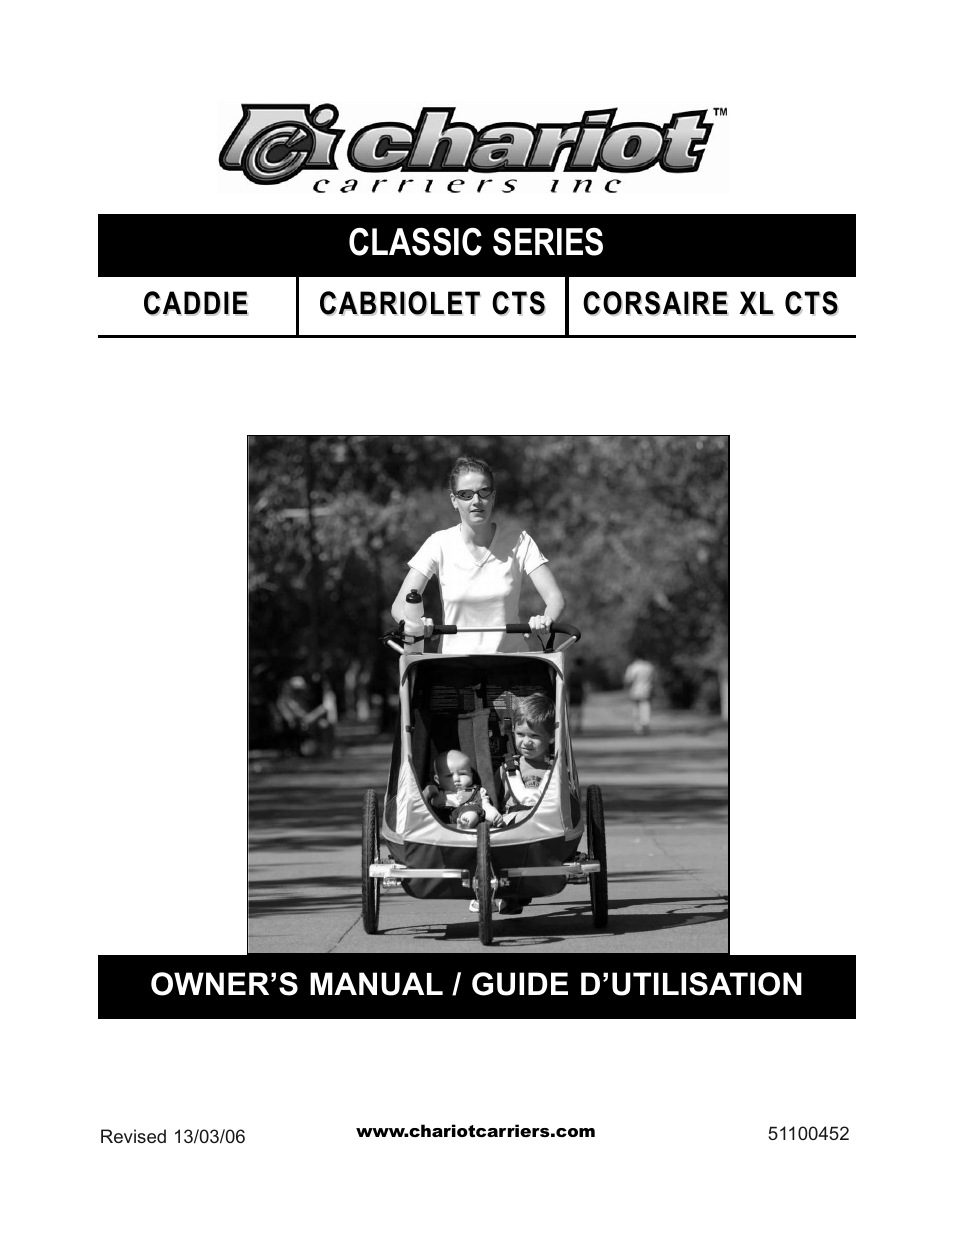 chariot carriers cabriolet cts user manual 14 pages also for caddie rh manualsdir com Online User Guide Example User Guide